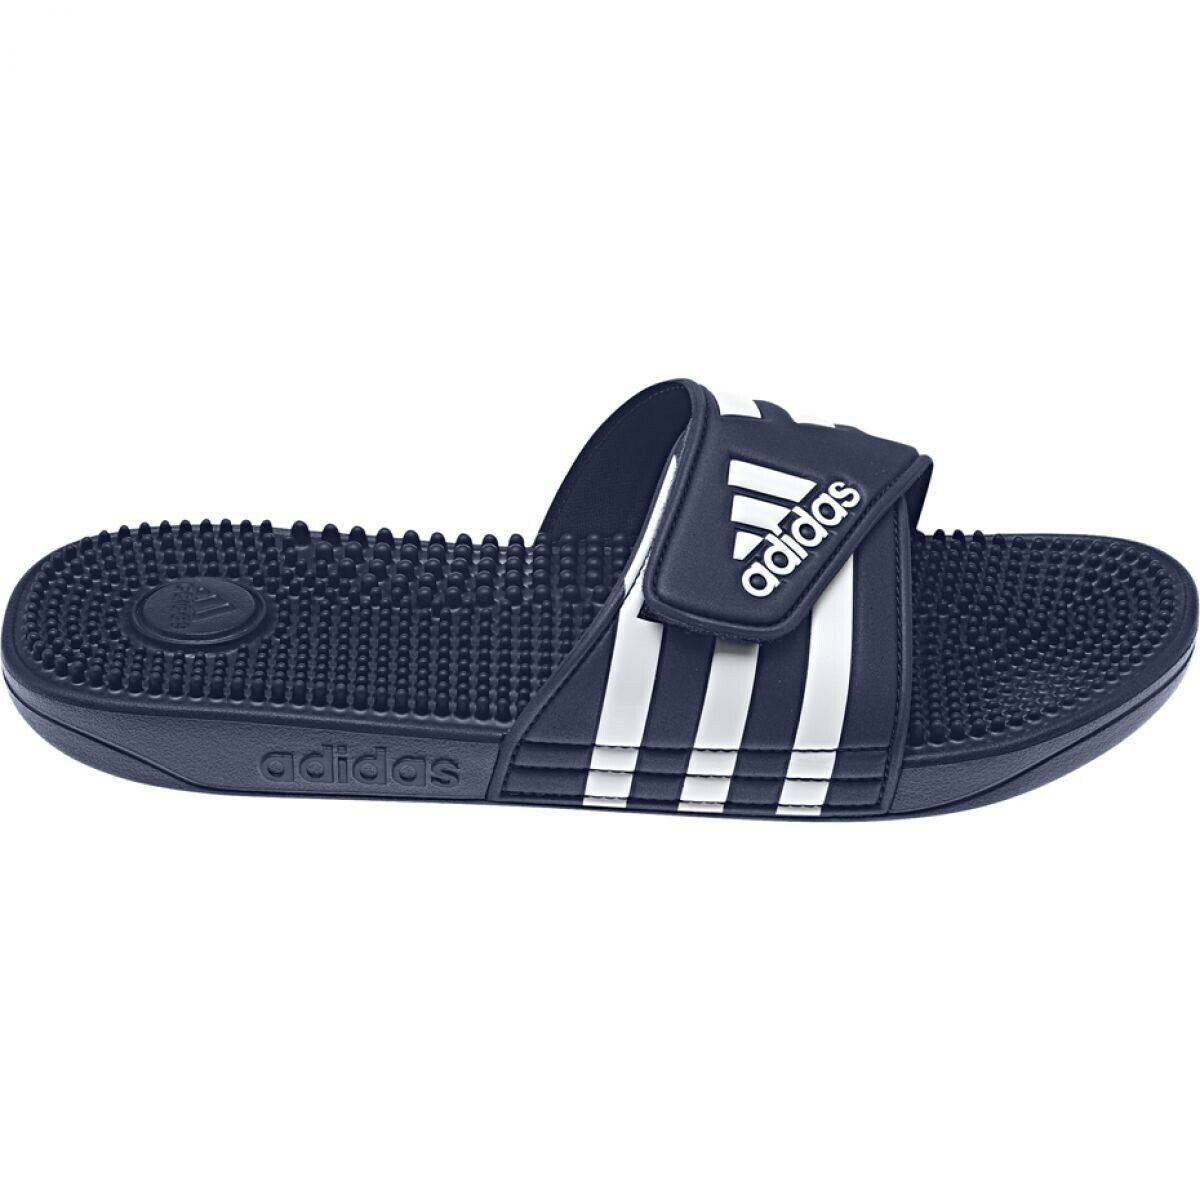 Adidas Sliders - Valley Sports UK